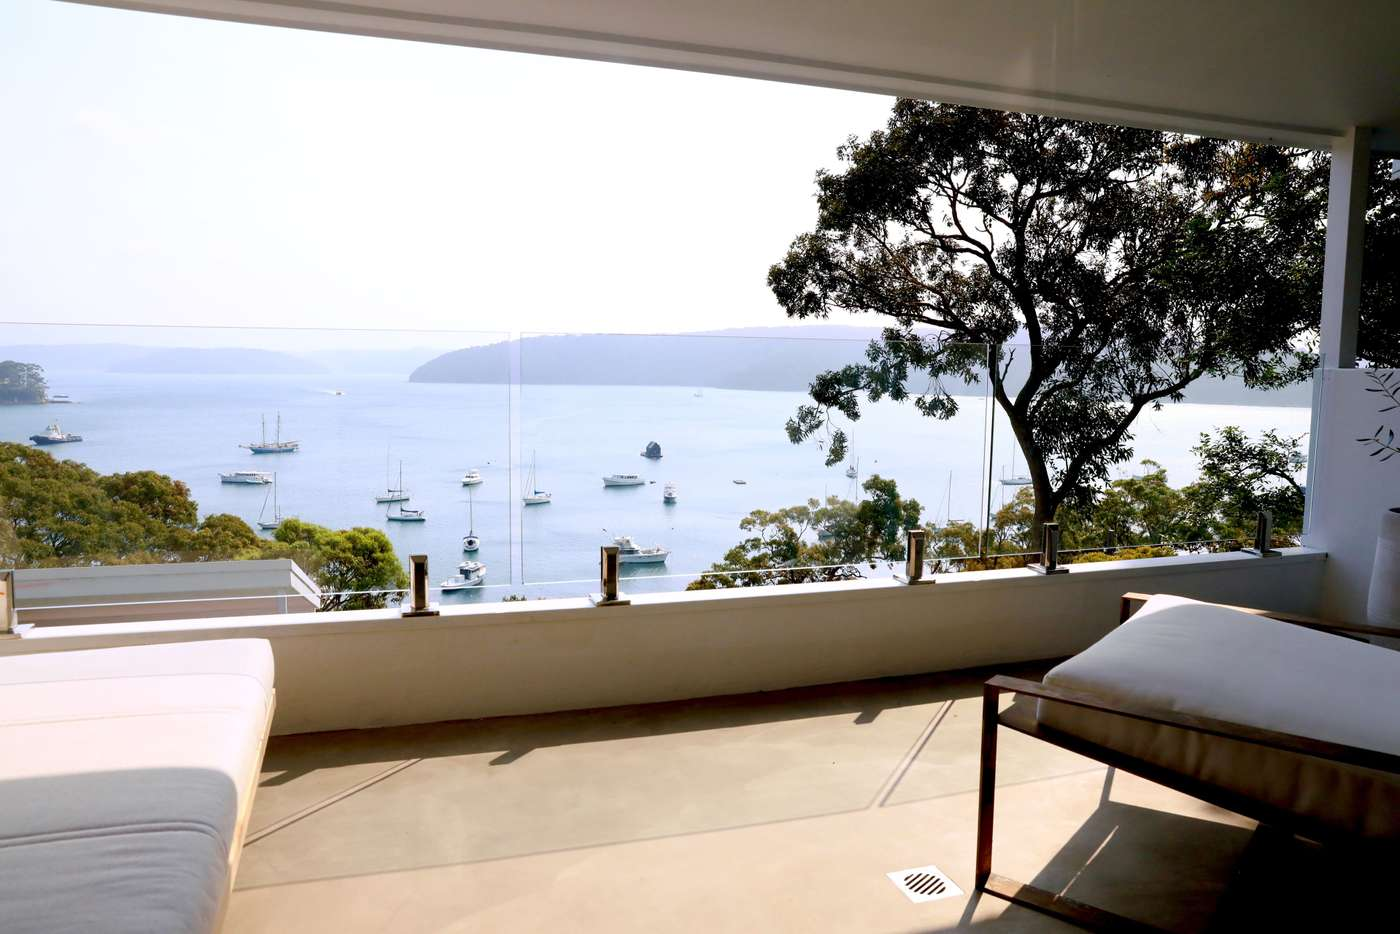 Main view of Homely house listing, 974 Barrenjoey Road, Palm Beach NSW 2108